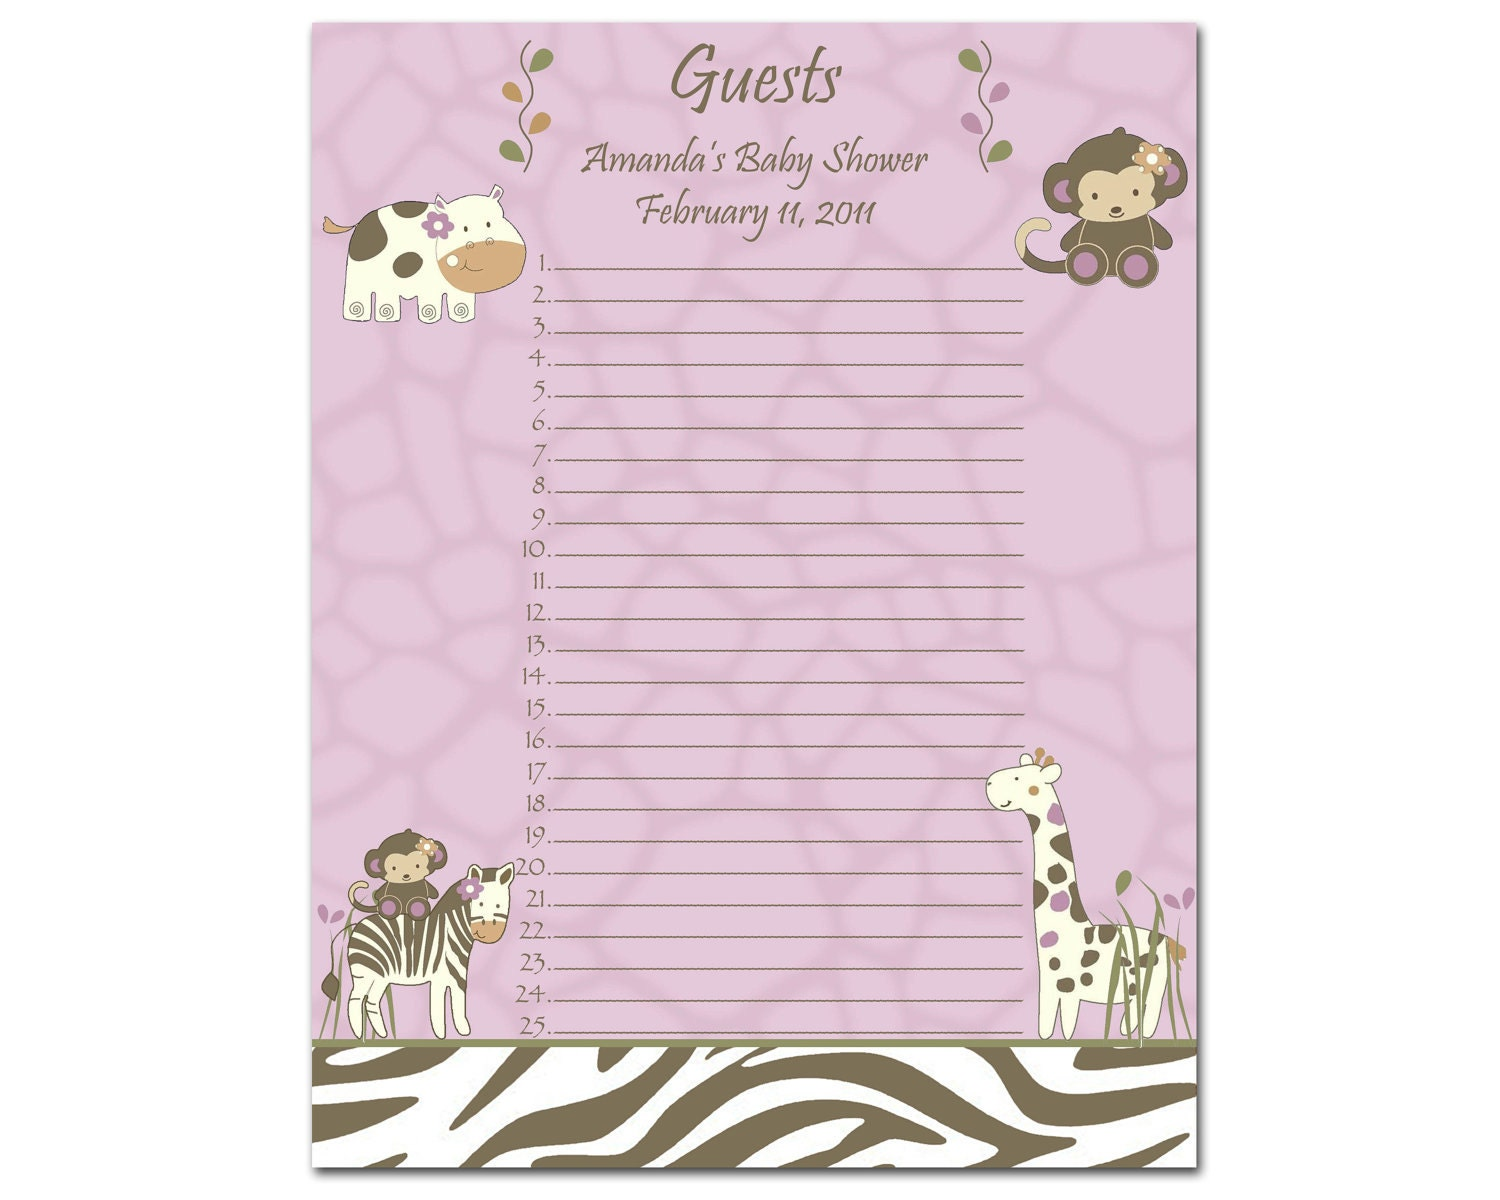 personalized cocalo jacana baby shower guest list by bdesigns4you